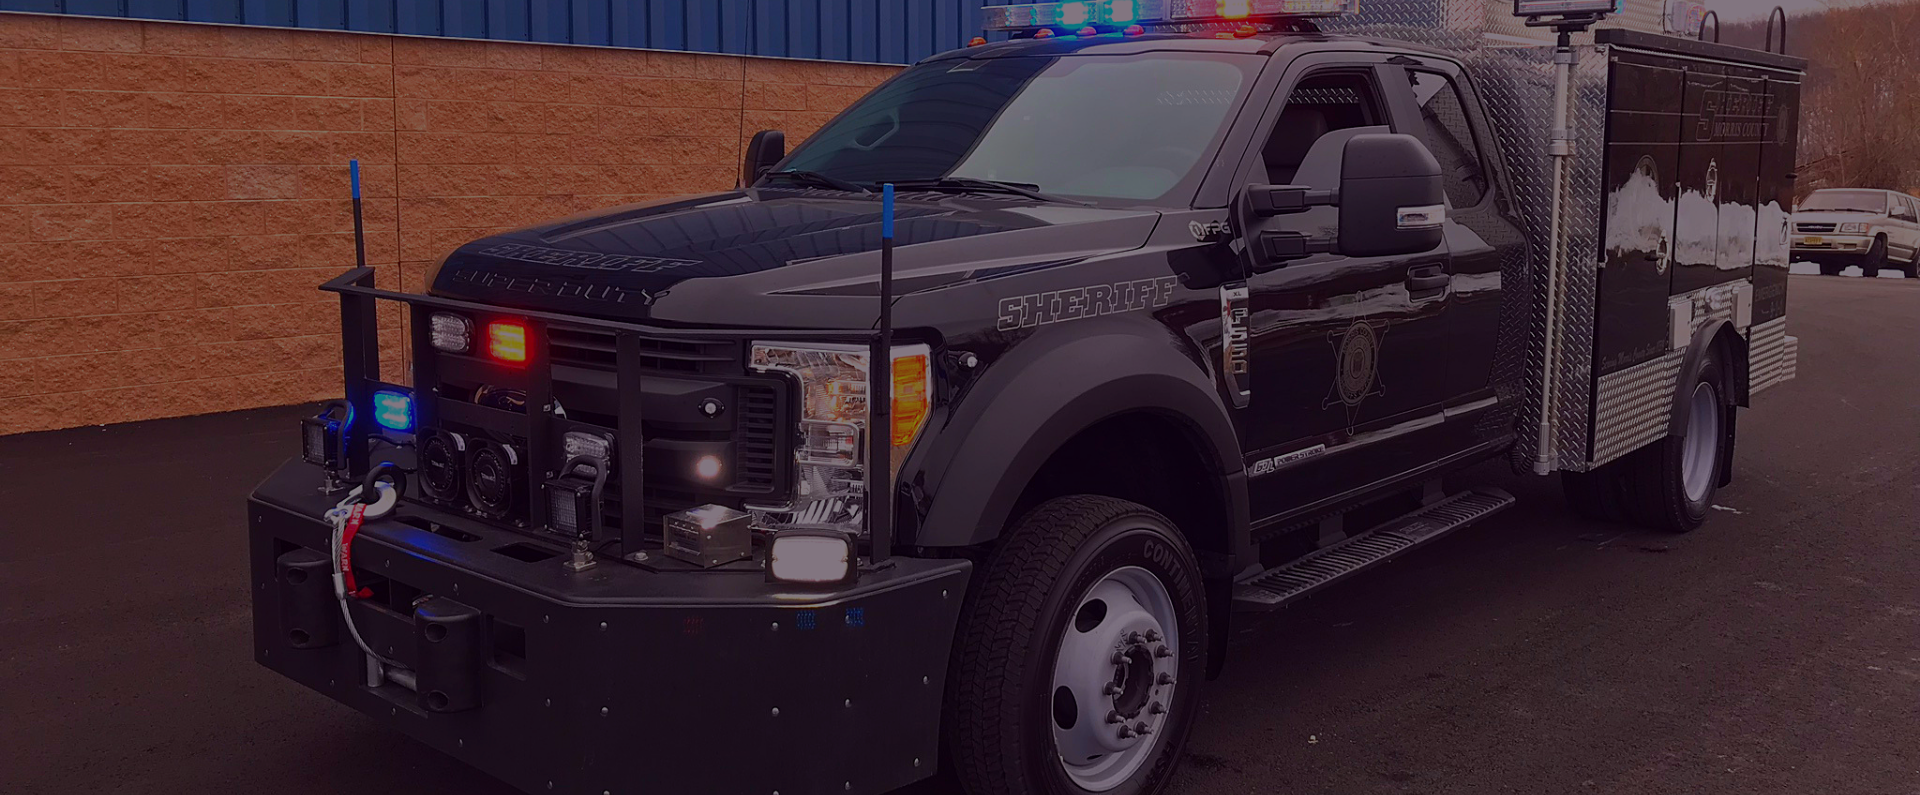 Copy of First Priority Emergency Vehicles Custom Police ESUs Specialty Vehicles